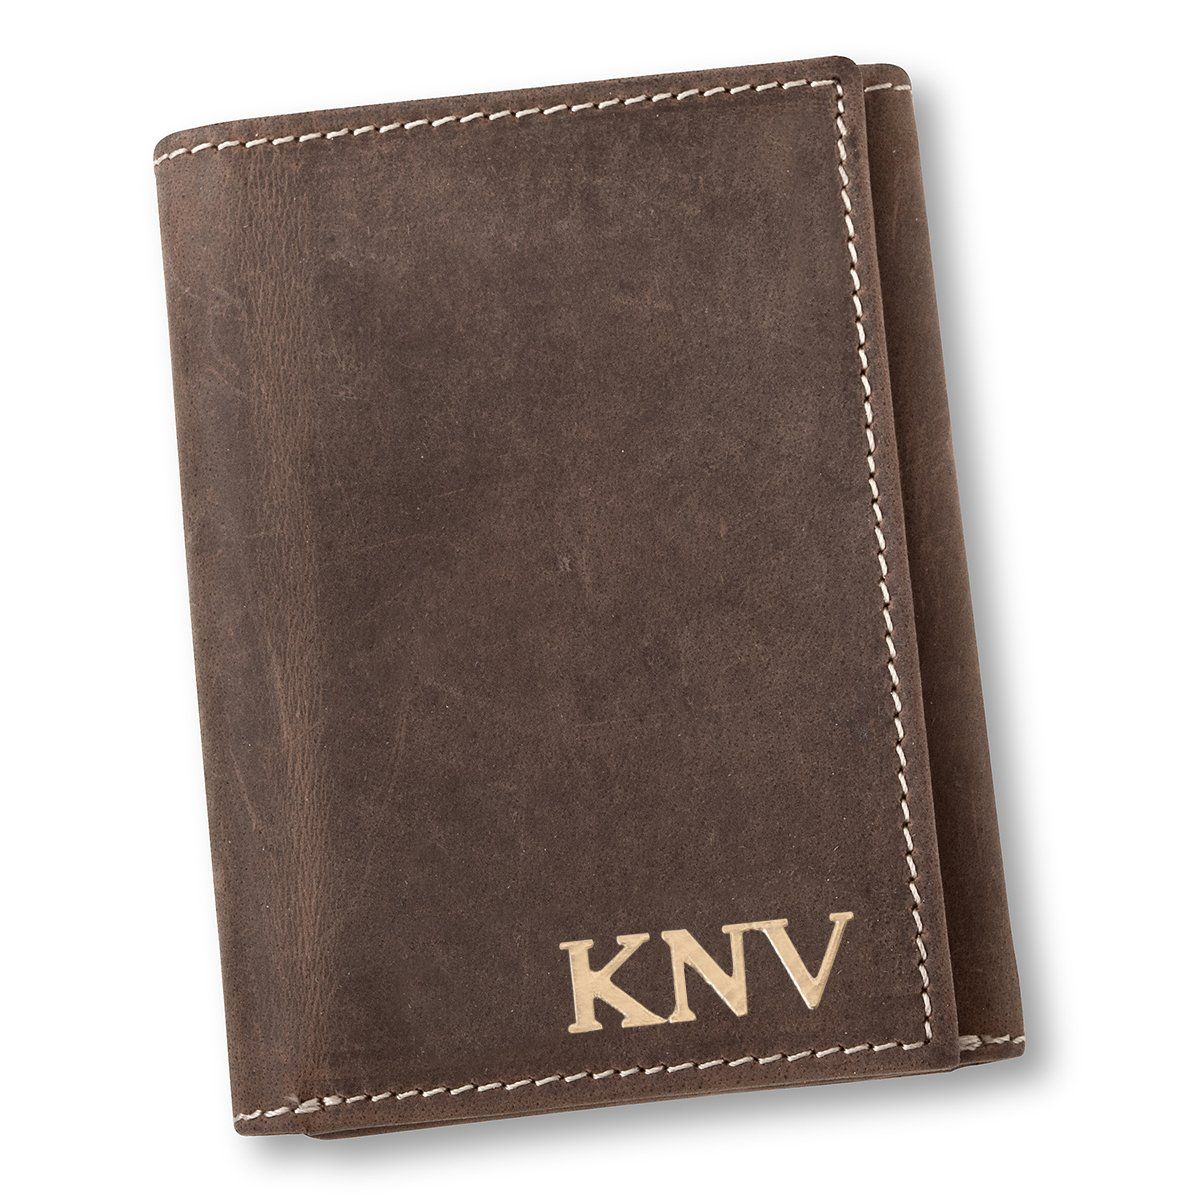 Personalized Medium Brown Borello Leather Tri-fold Wallet